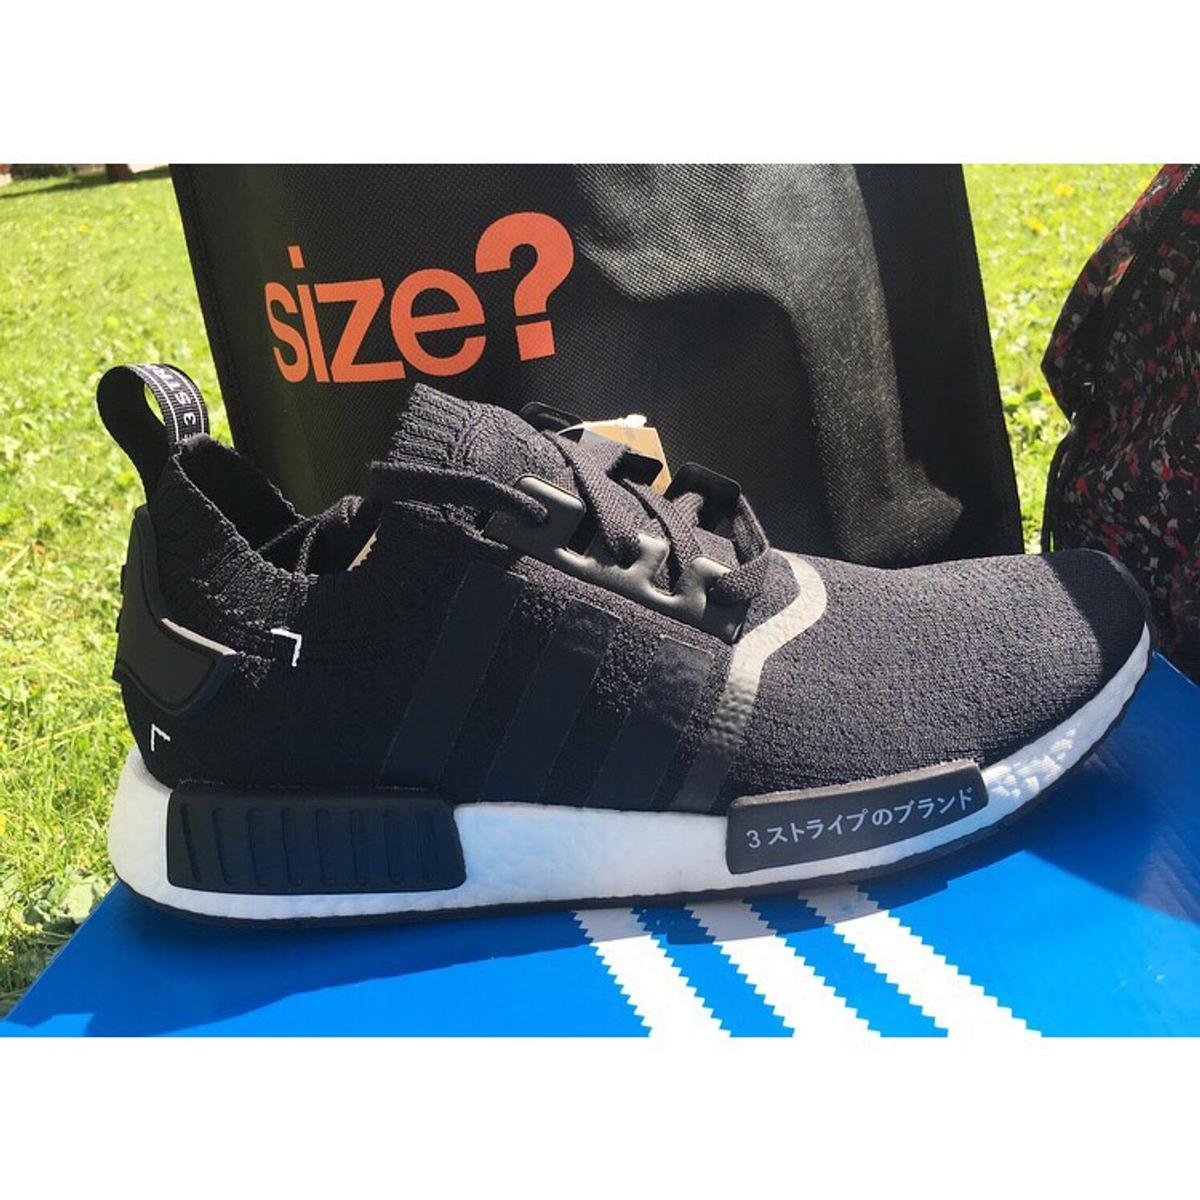 Adidas Nmd R1 Japan In Bd19 Cleckheaton For 200 00 For Sale Shpock